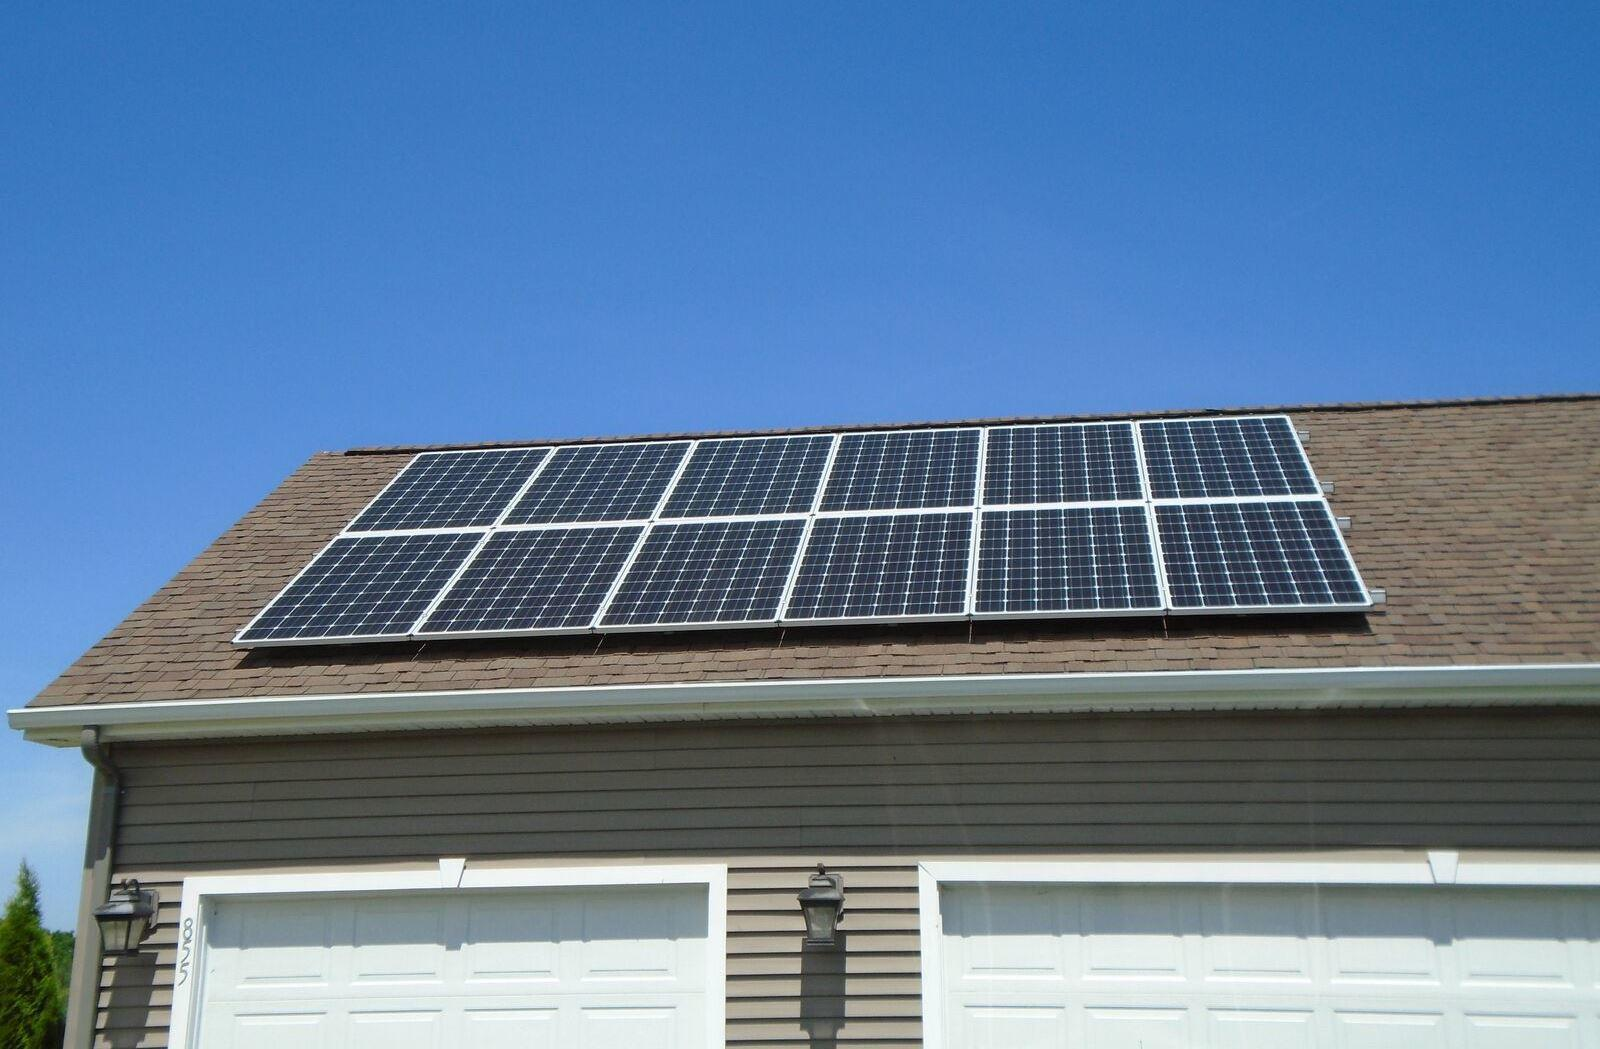 Roof-Mounted Solar Array in Cayuga, NY - After Photo